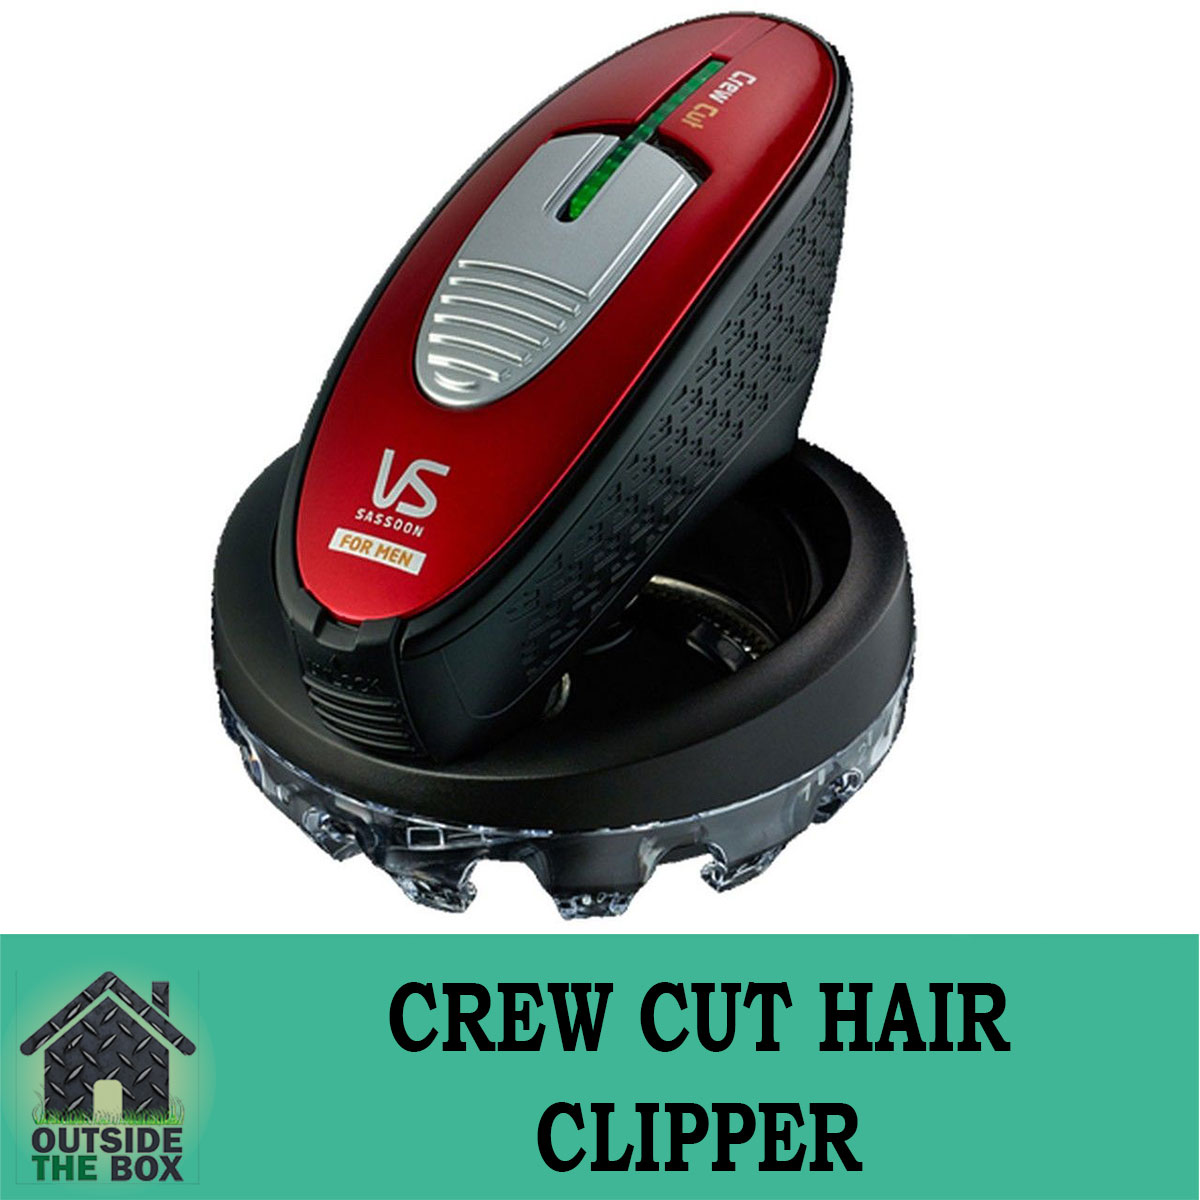 Details about VS Sassoon Crew Cut Hair Clipper Revolution in Self Hair  Cutting New